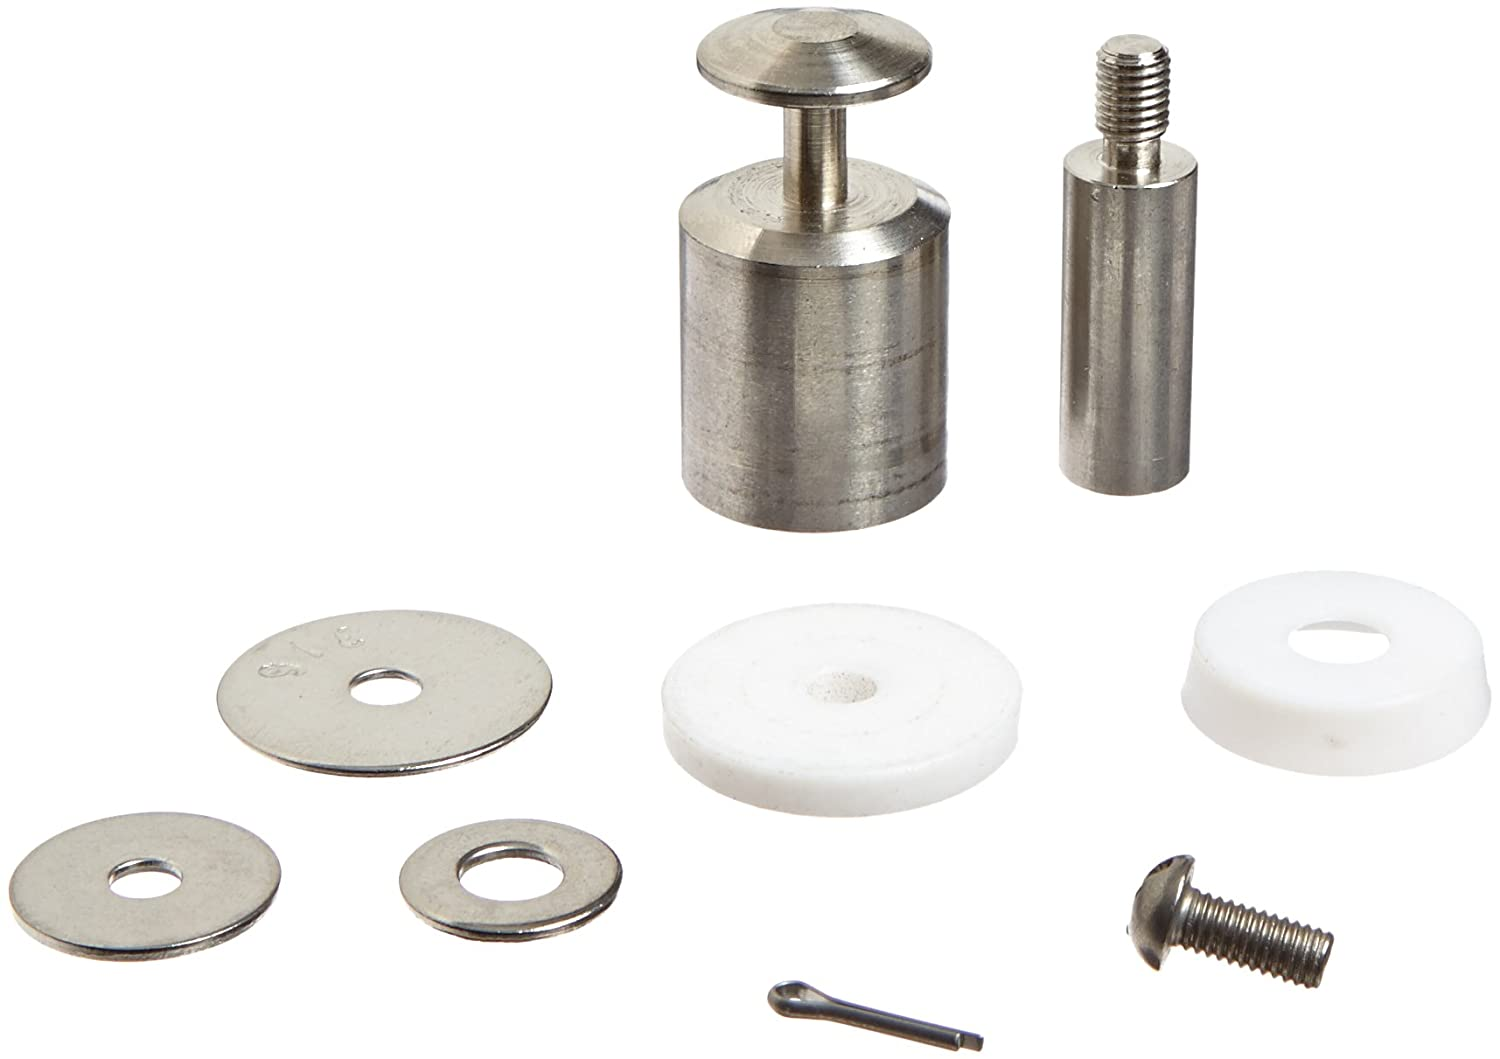 Robert Manufacturing KS230 Bob 5 Piece Plunger Kit for R1371 1 Stainless Steel Float Valves Control Devices